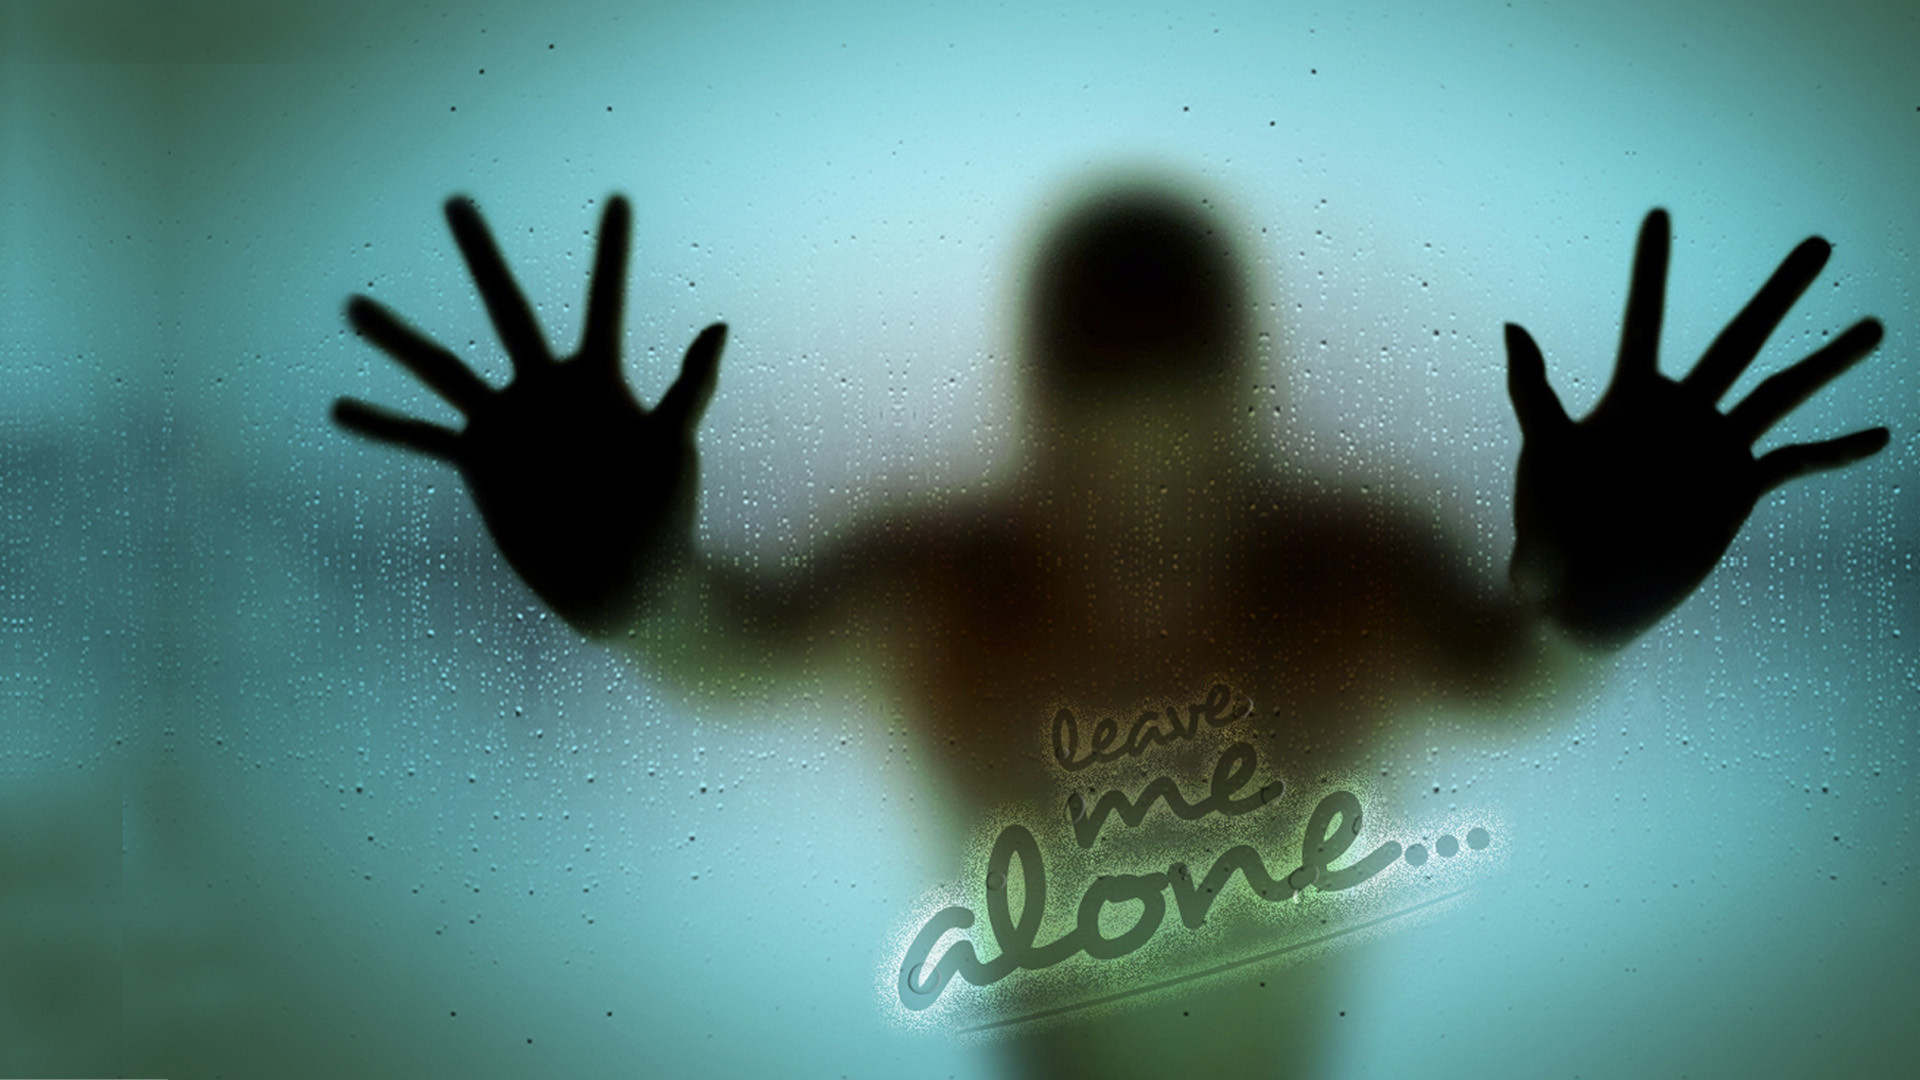 Leave Me Alone Wallpaper 64 Images